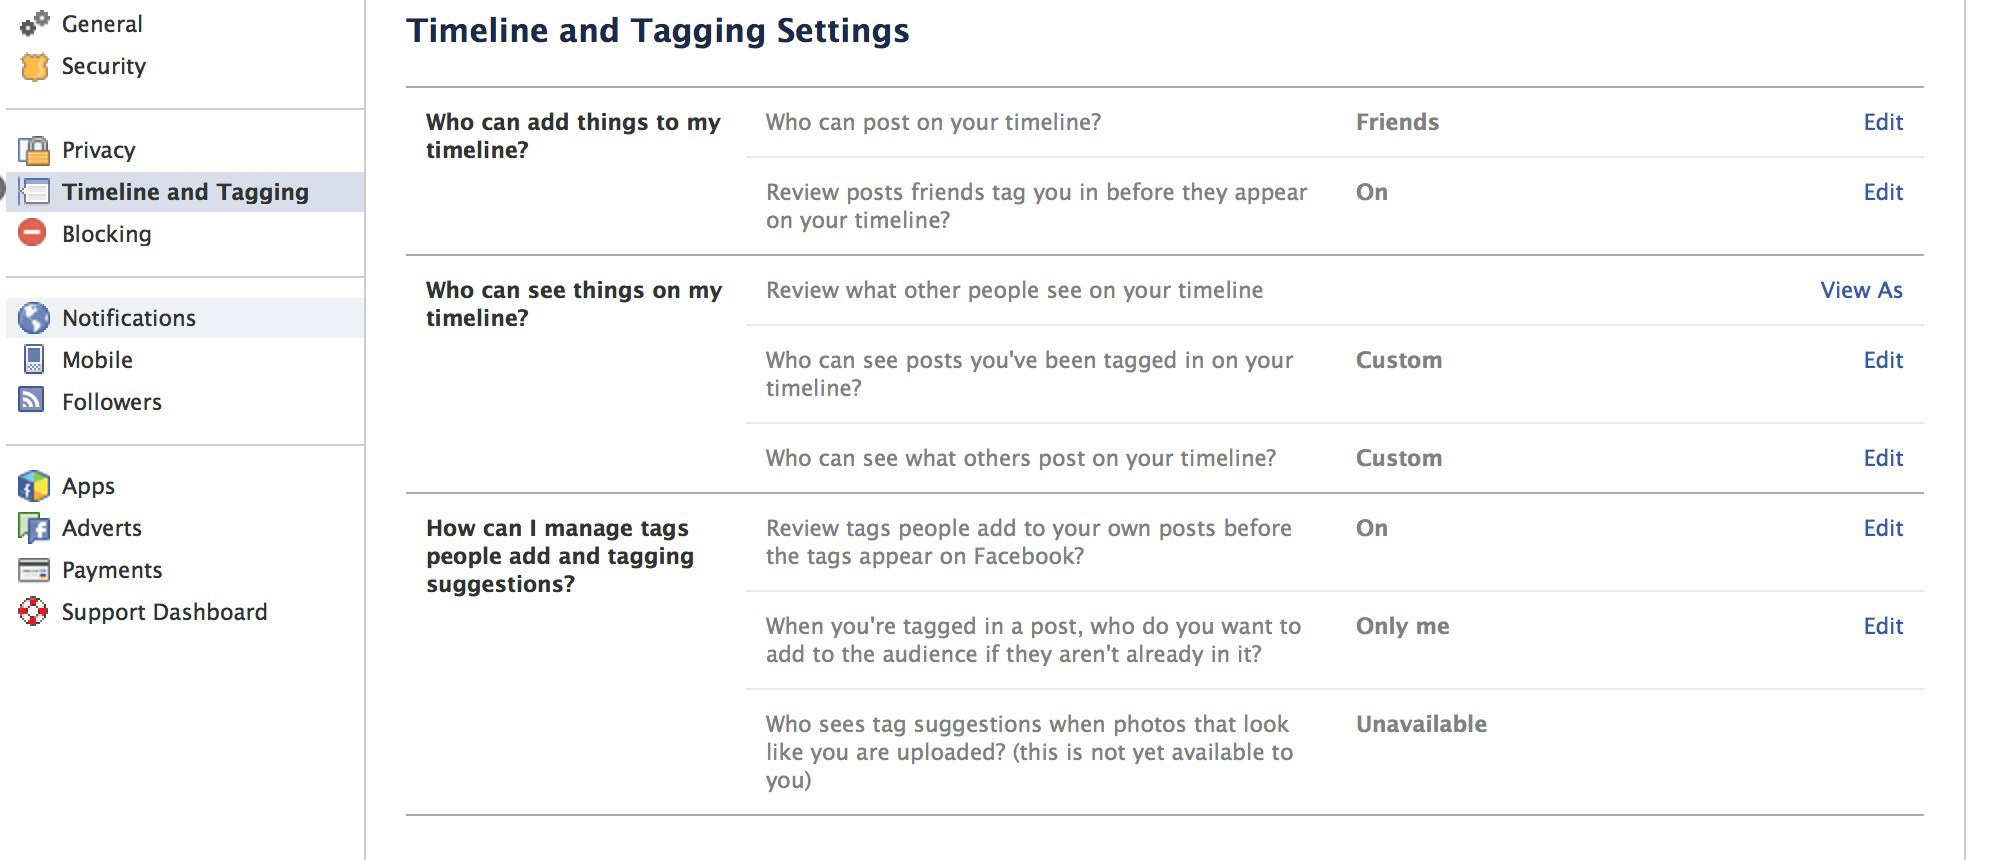 wise to enable the reviewing of tags before they are added to Facebook, it maintains your control over the audience for your posts. Set this to On.